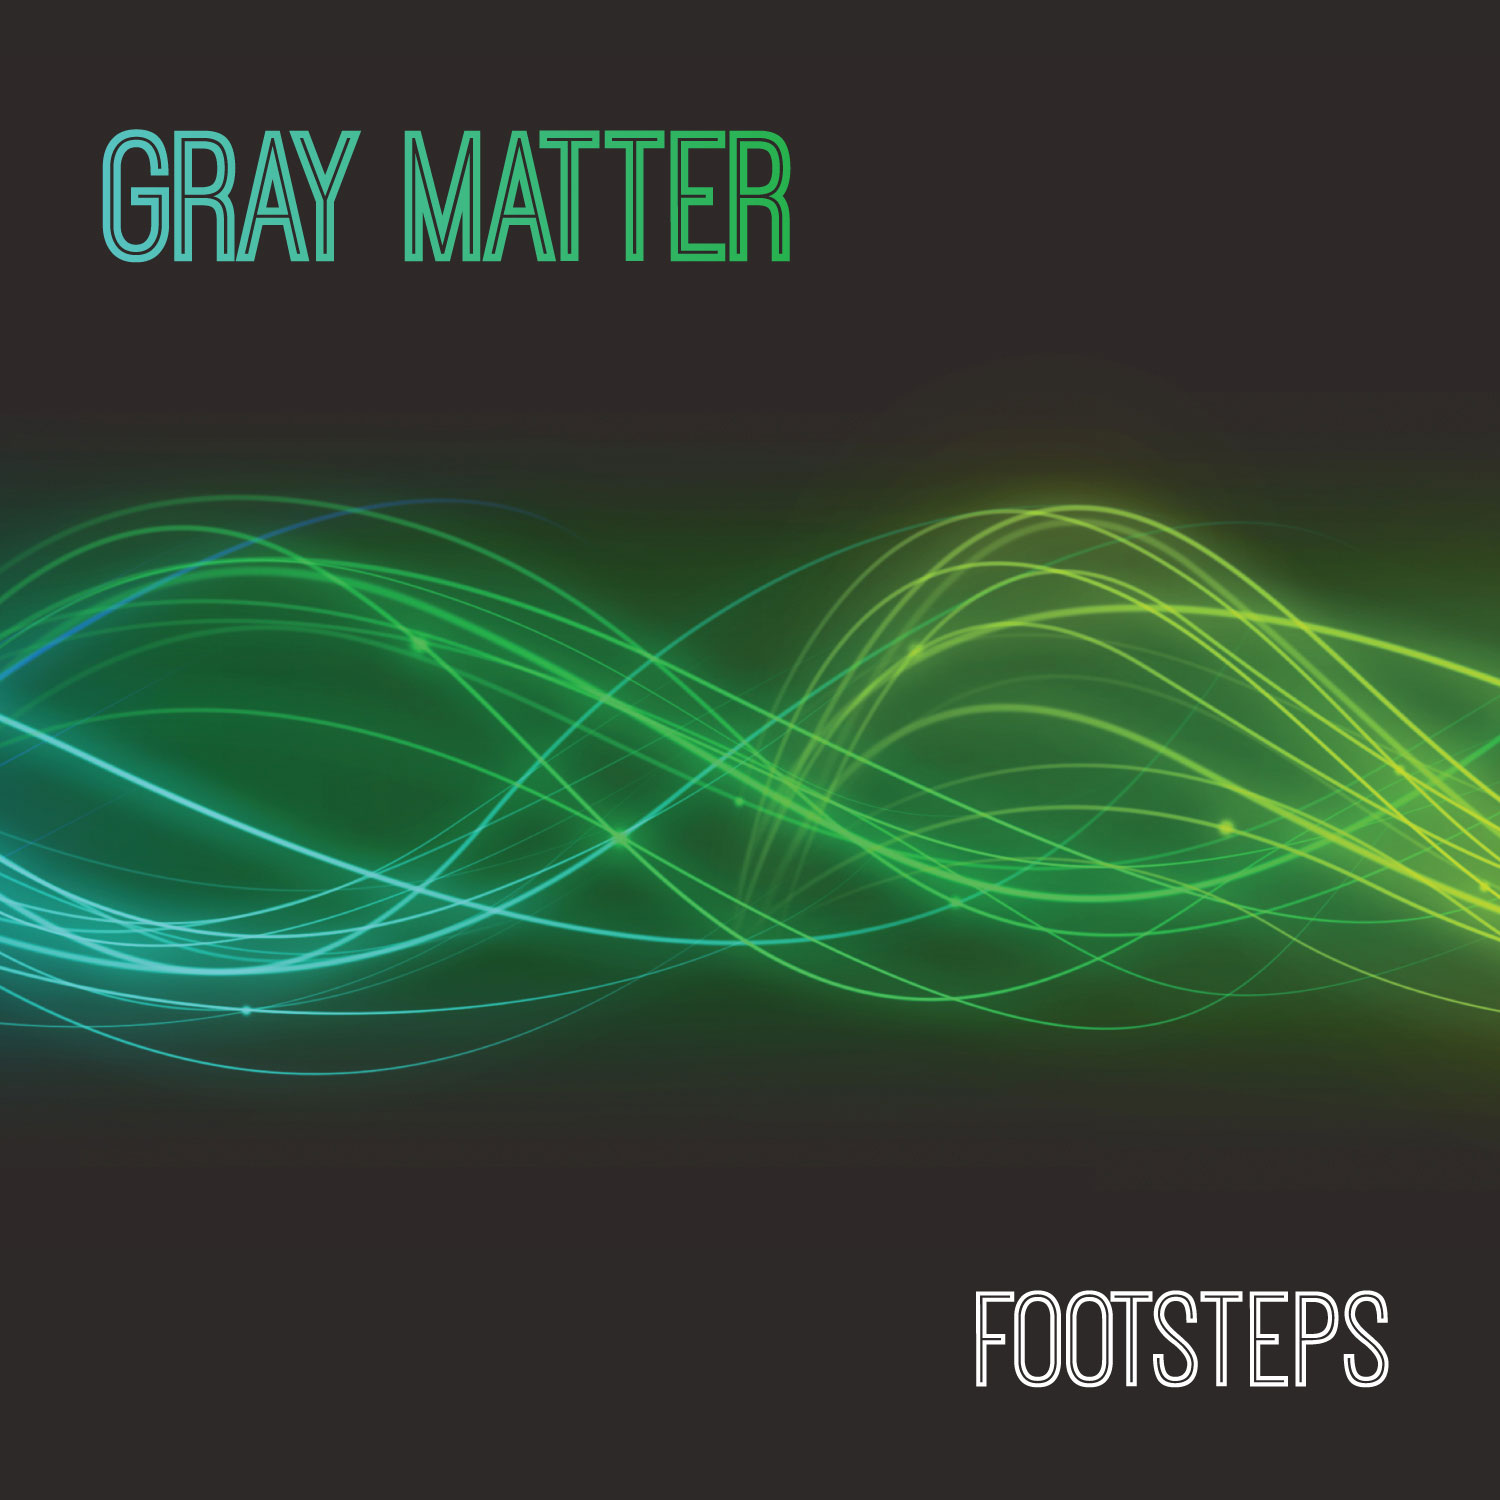 Gray Matter – Footsteps - Album art